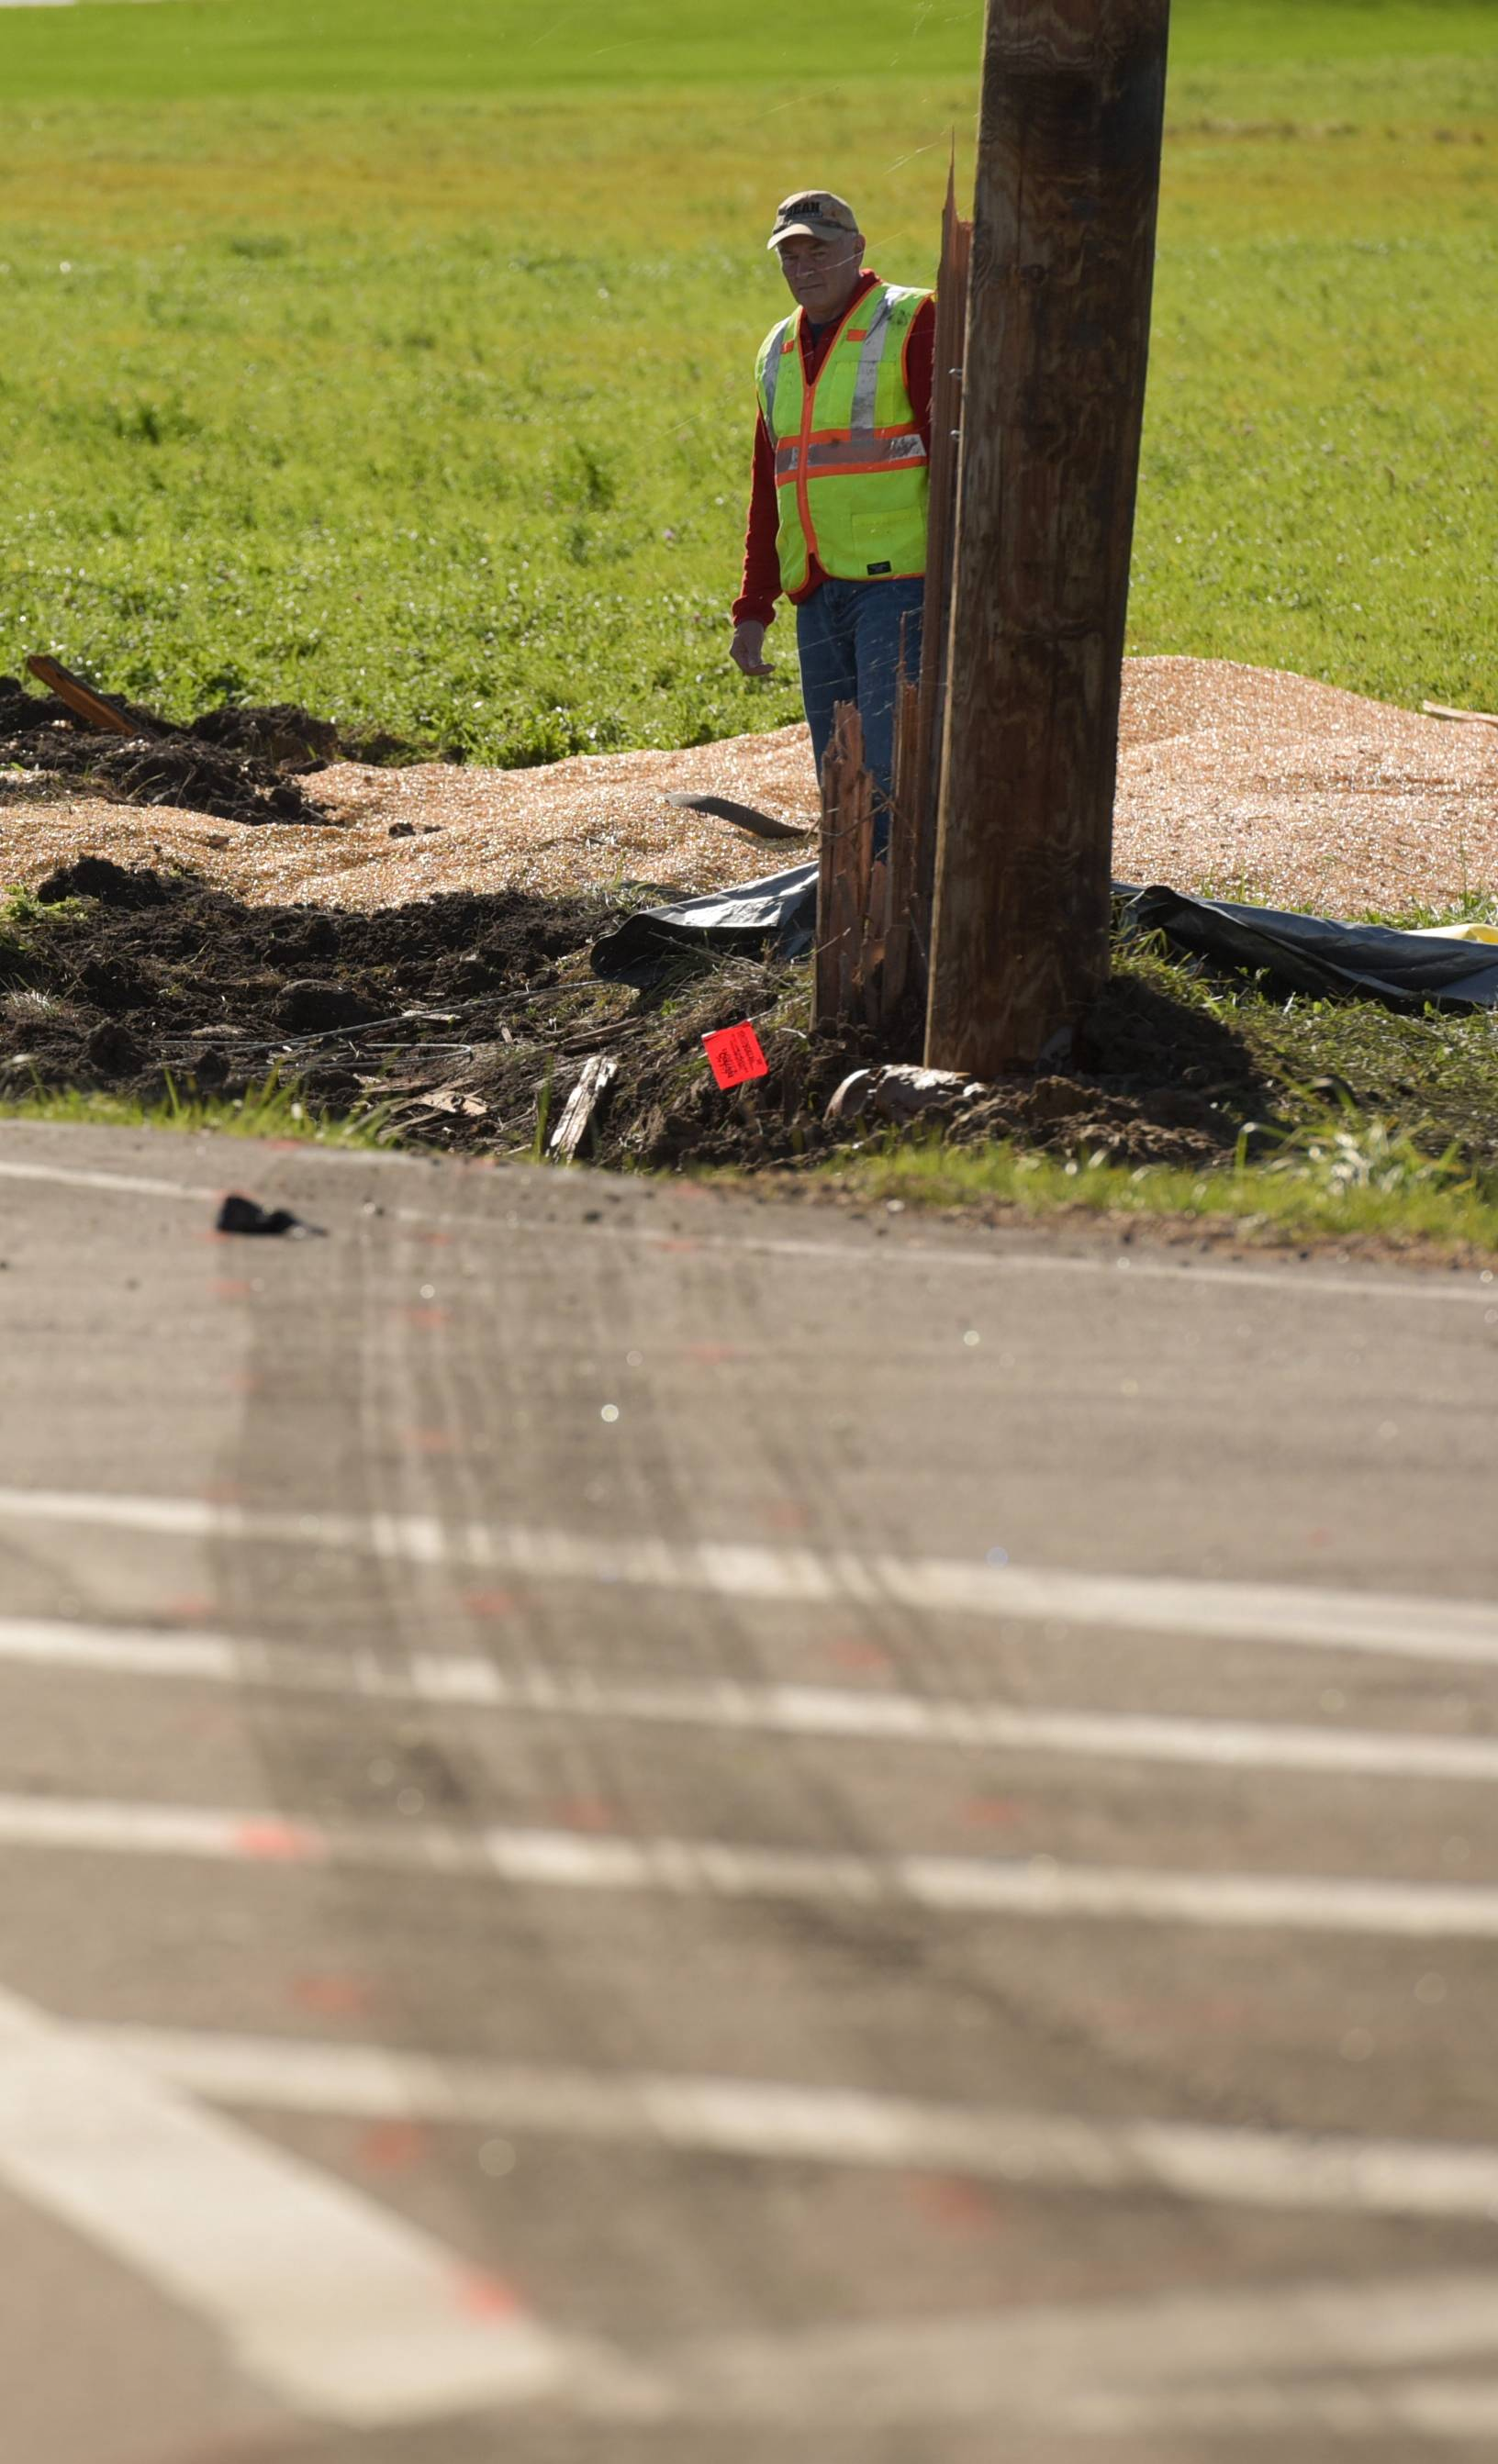 Skid marks lead off the road at the intersection of Meredith and Beith roads in Kane County as insurance investigator Jeffrey Golden of HRYCAY Consulting Engineers, Inc. surveys the scene of a crash that killed two teens Saturday.